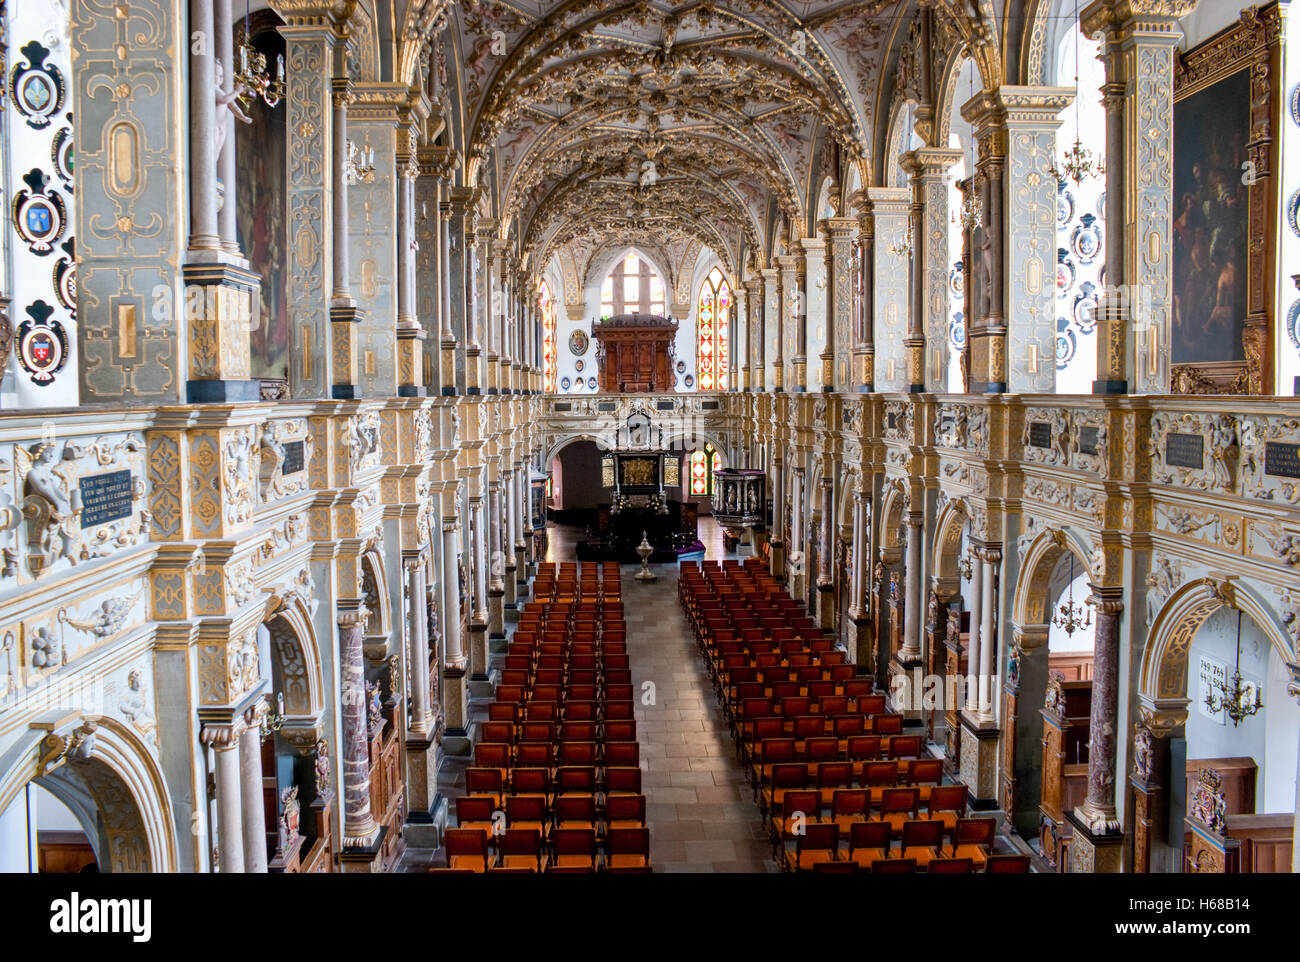 The Palace Church or Chapel of Orders serves as a local church today and is a part of the palace museum. - Stock Image